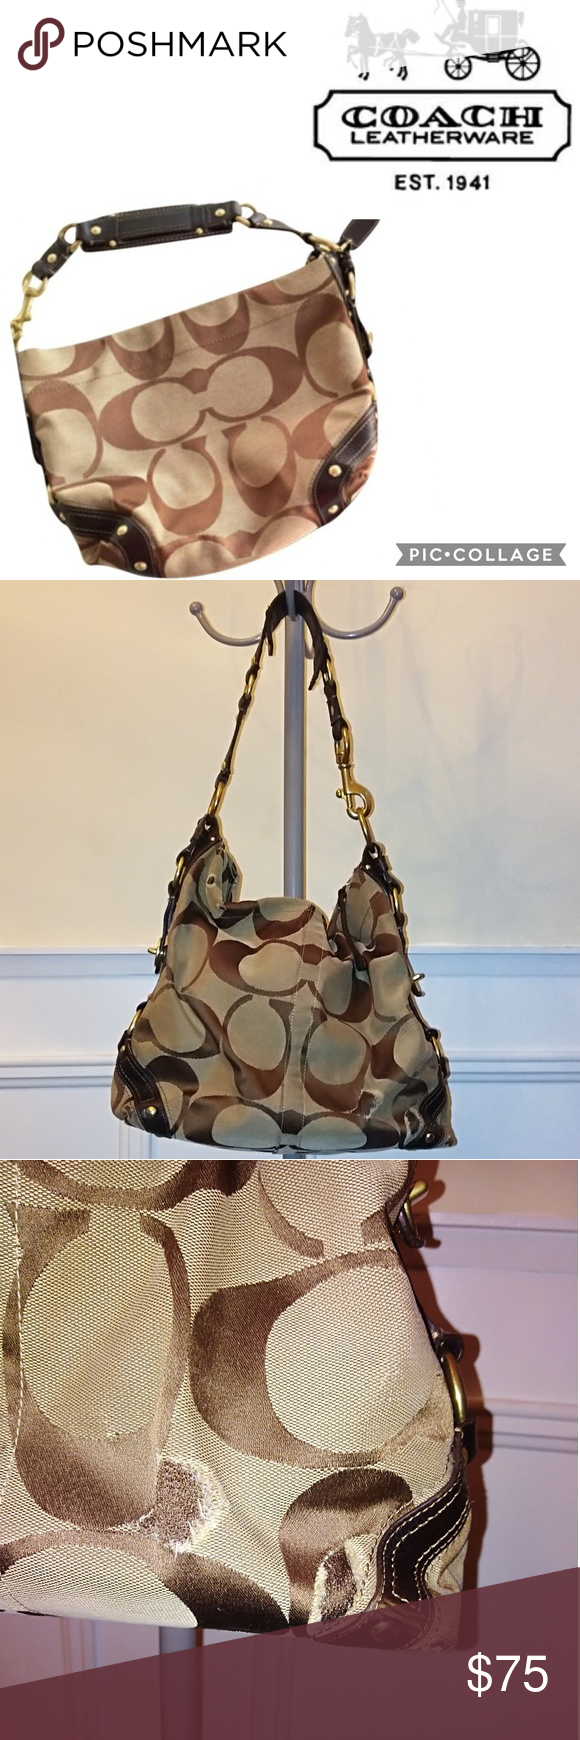 Coach Carly Signature Hobo Handbag Coach Carly Signature Brown and tan Used  fair condition Large bag, fits a lot Some wear on leather not bad. 881a6884b1